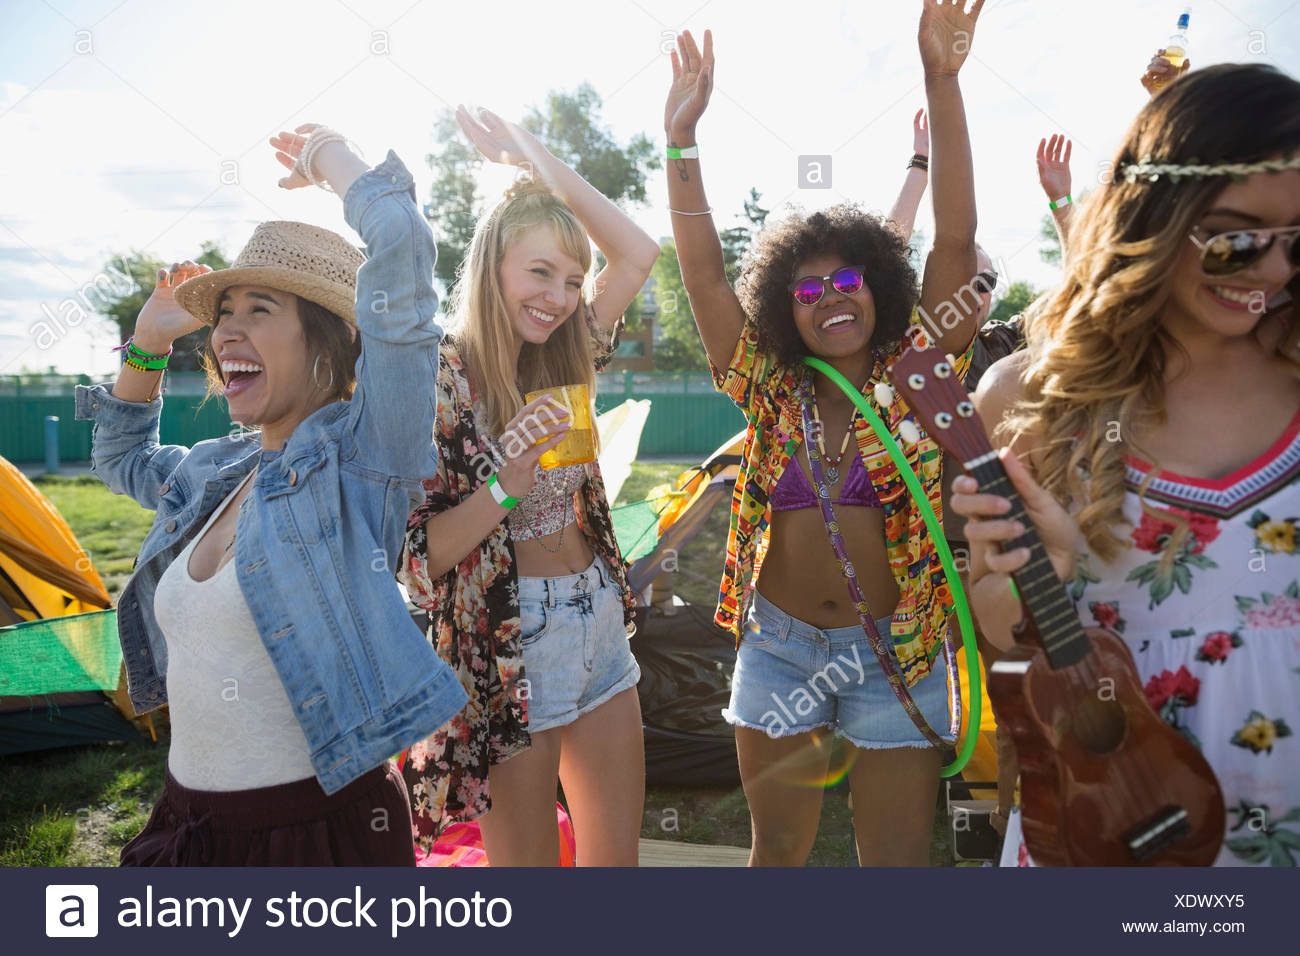 Enthusiastic young women dancing at summer music festival - Stock Image